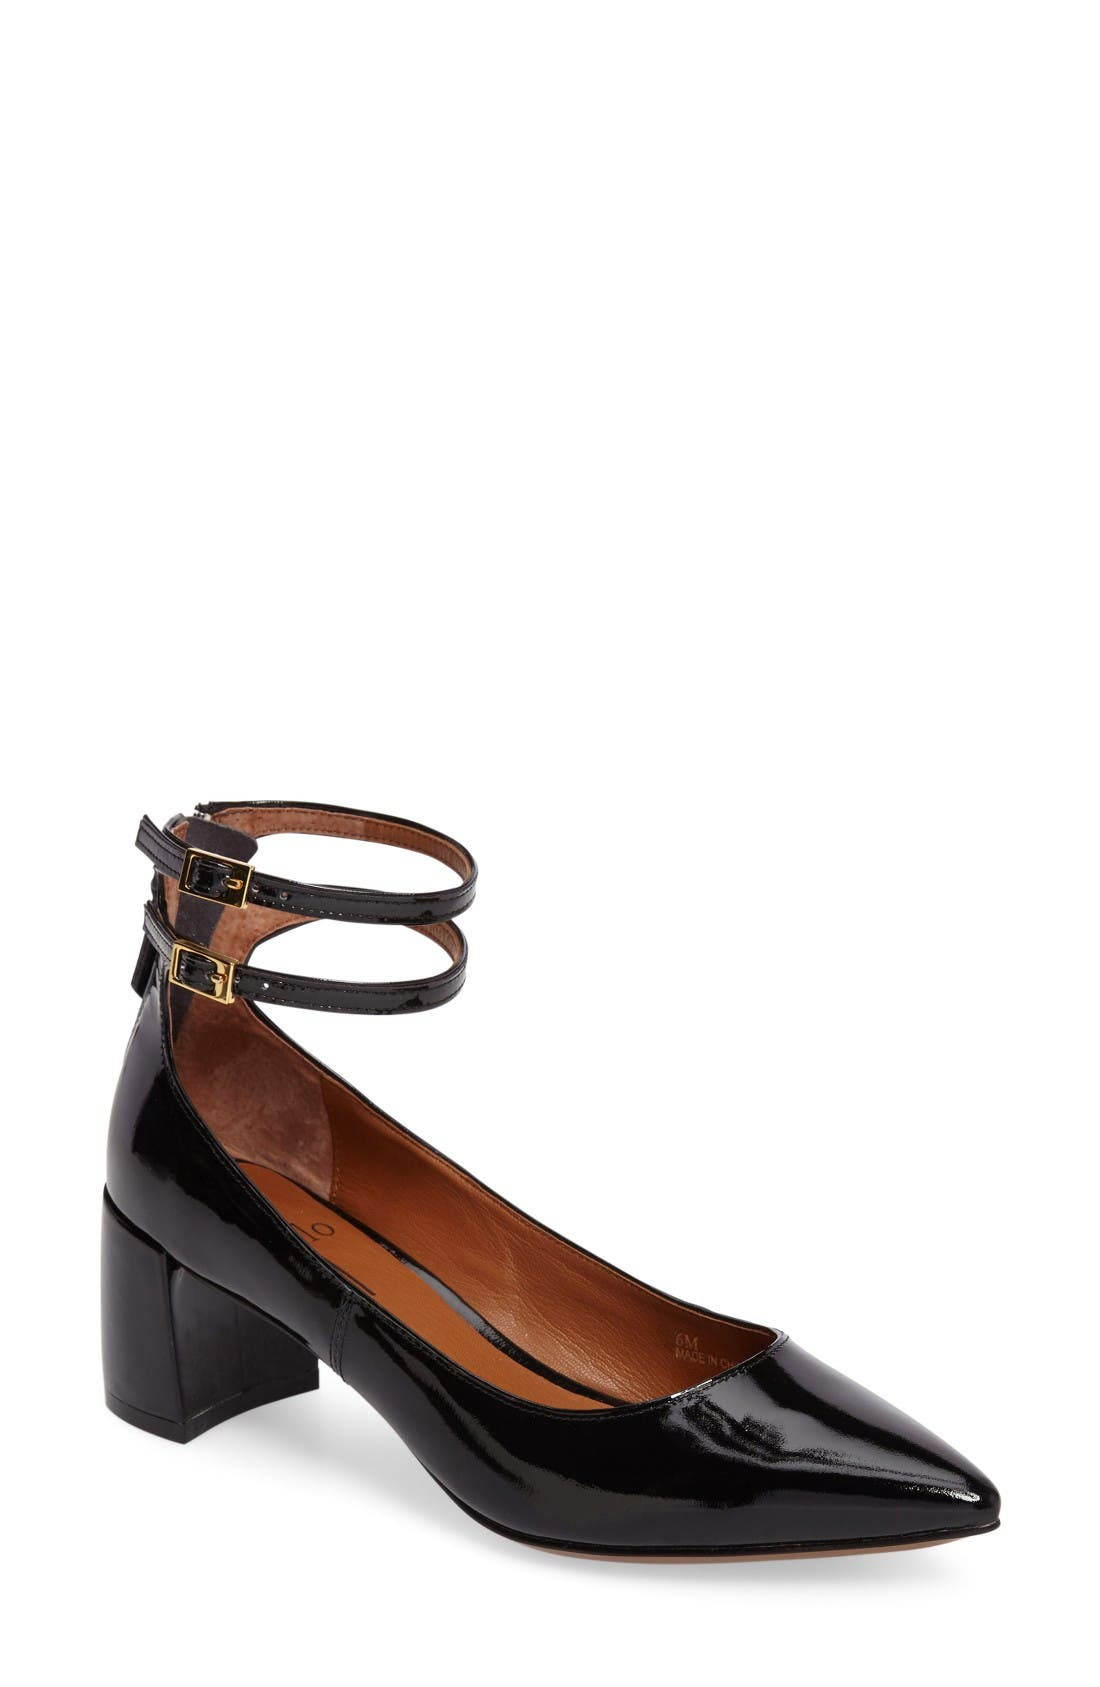 'Noel' Pointy Toe Ankle Strap Pump,                             Main thumbnail 1, color,                             Black Patent Leather